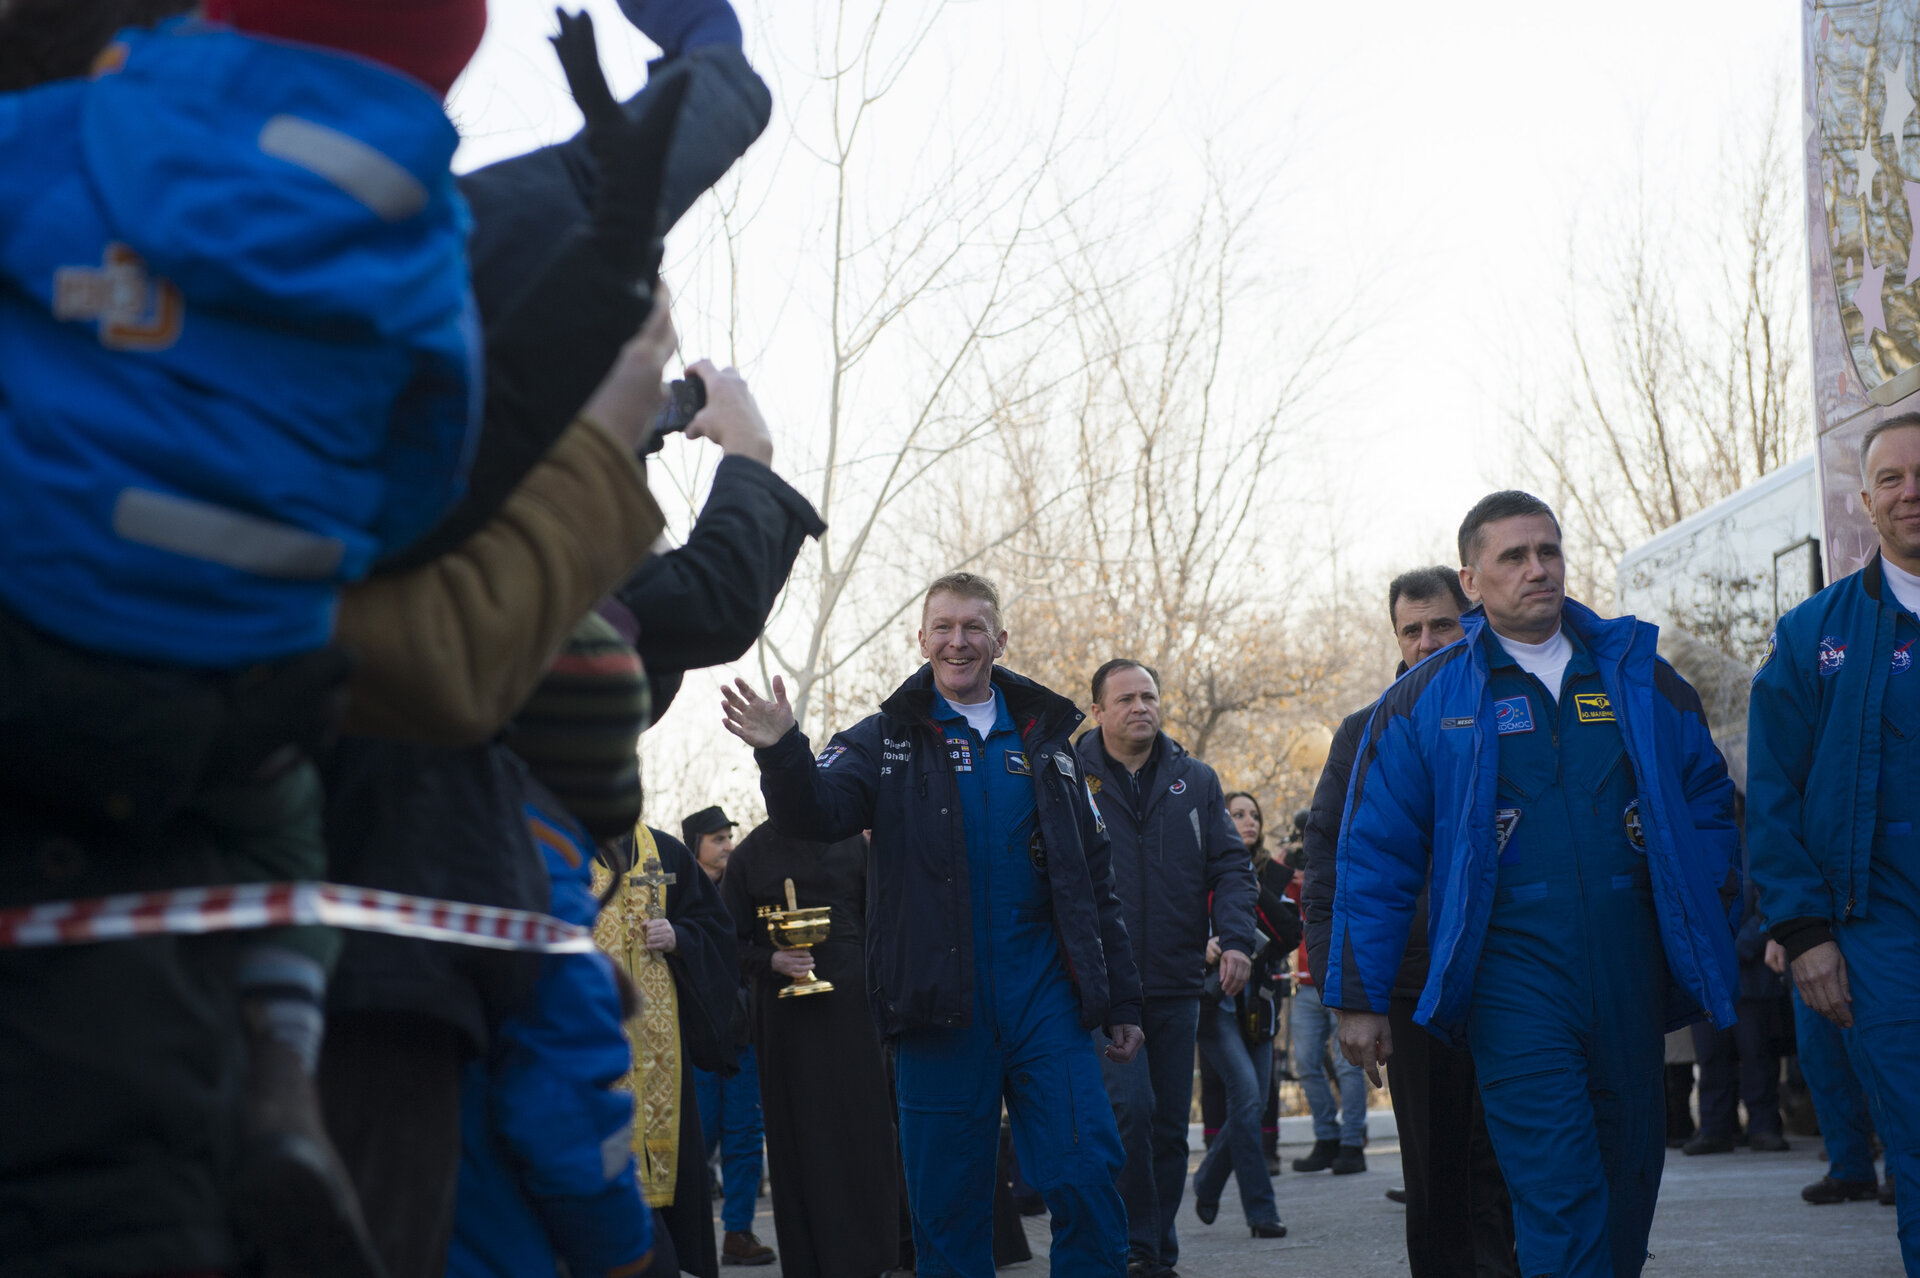 Tim Peake waves farewell to family and friends